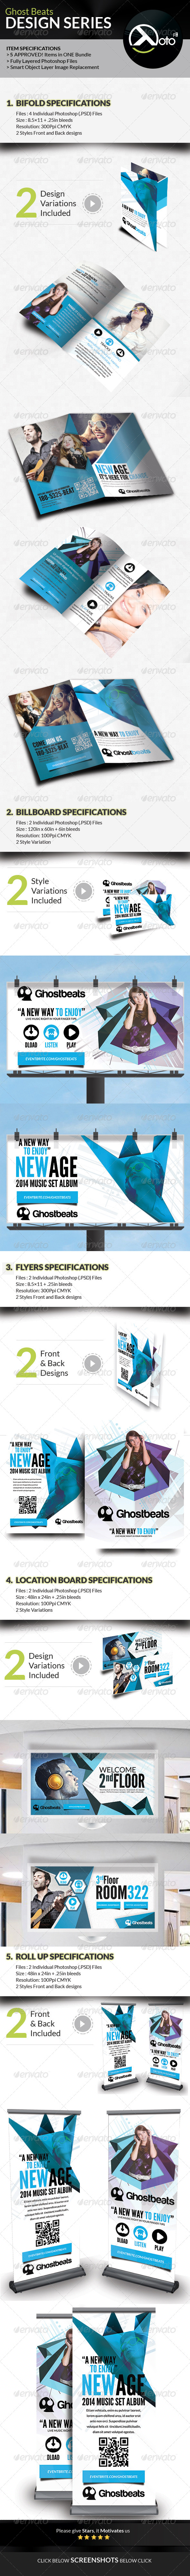 GraphicRiver Ghost Beats Music Download Design Series Bundle 7742171